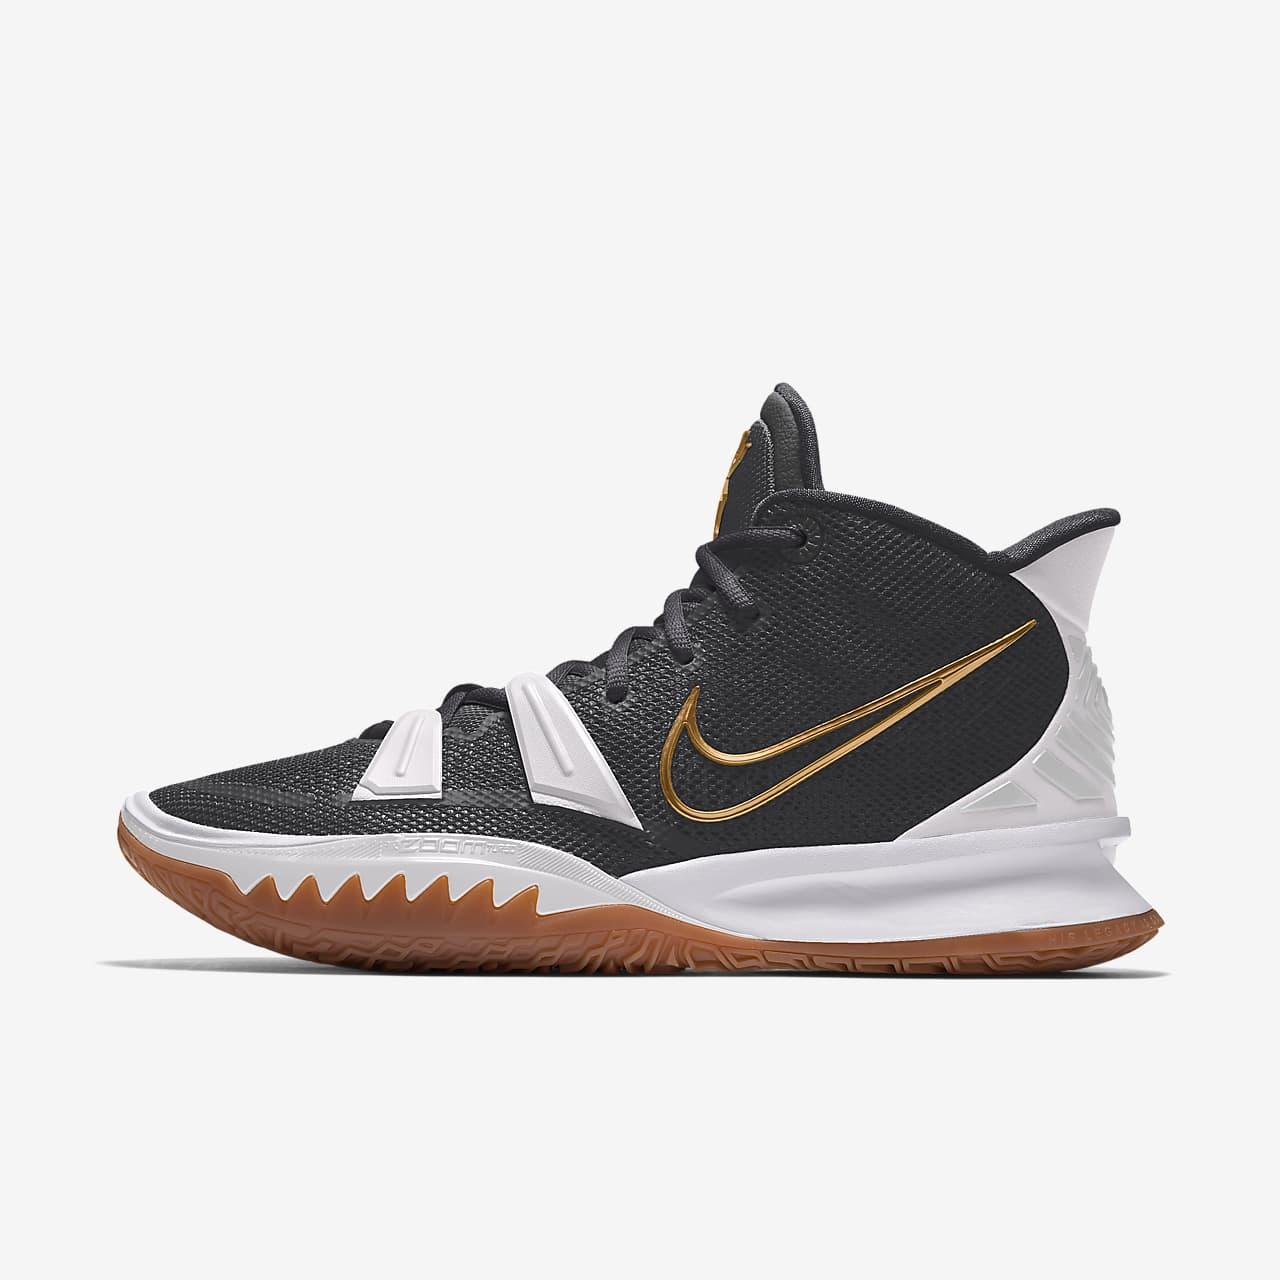 Scarpa da basket personalizzabile Kyrie 7 By You